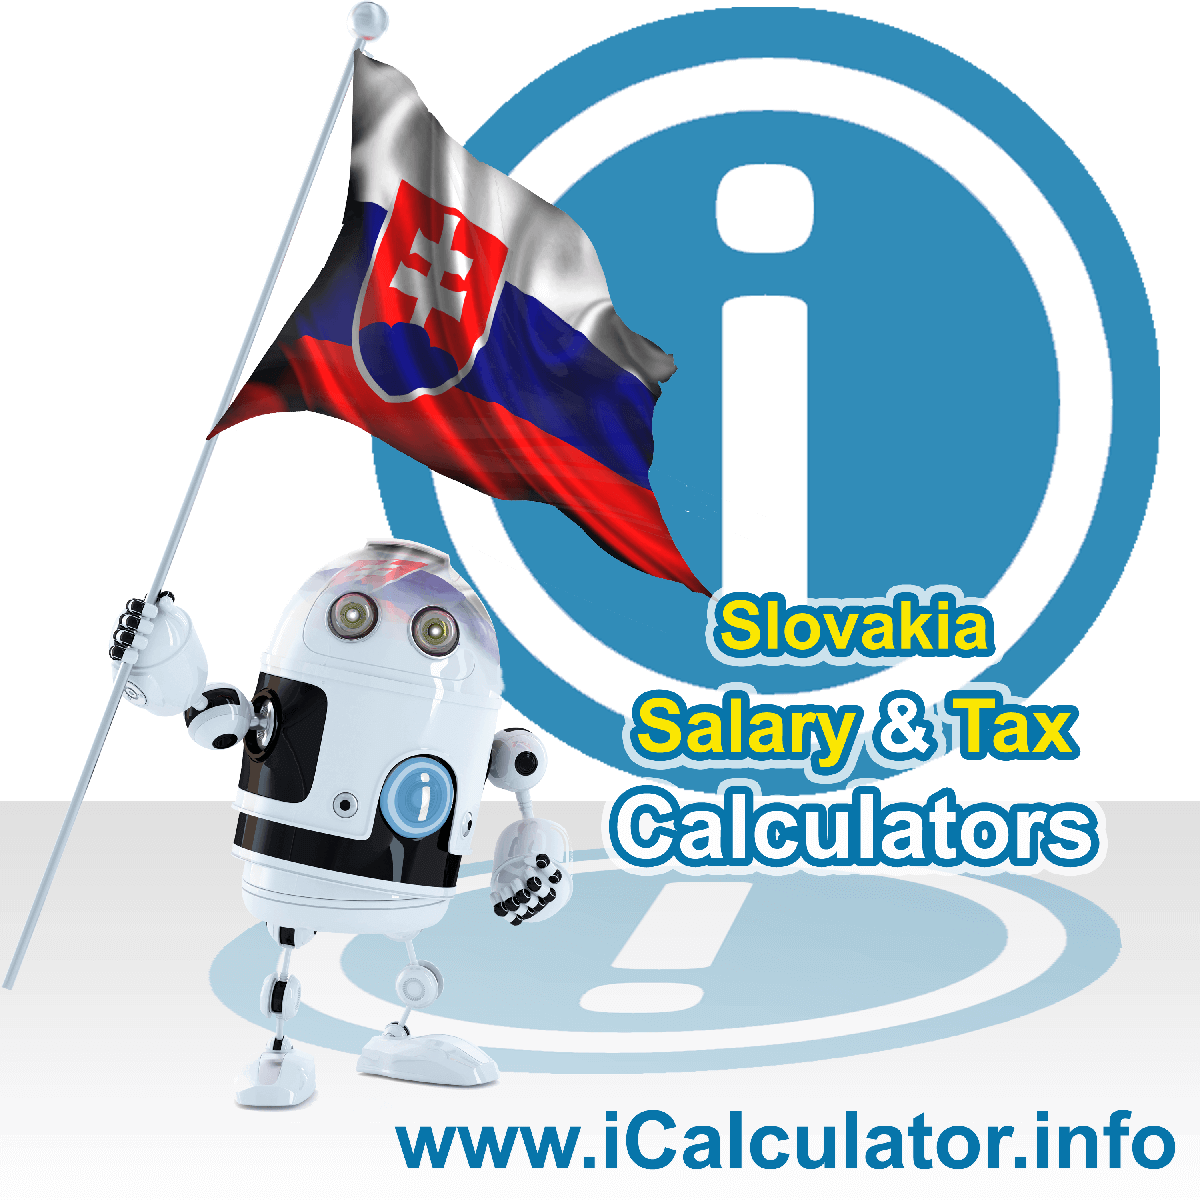 Slovakia Wage Calculator. This image shows the Slovakia flag and information relating to the tax formula for the Slovakia Tax Calculator